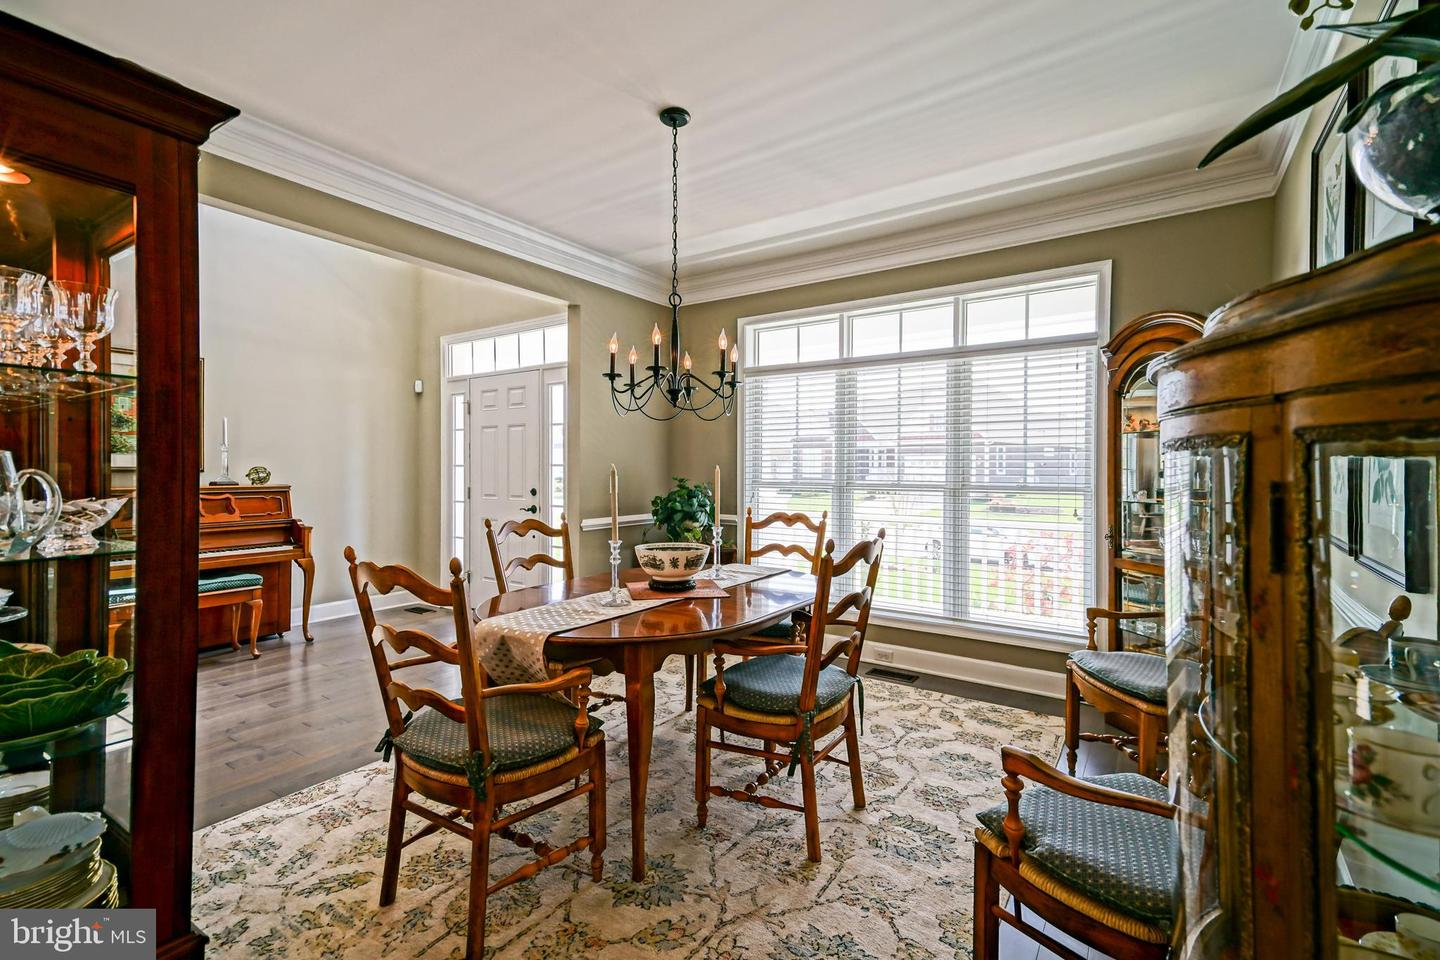 DESU139128-301667379198-2019-08-05-10-43-56 35222 Overfalls Dr N | Lewes, DE Real Estate For Sale | MLS# Desu139128  - Lee Ann Group